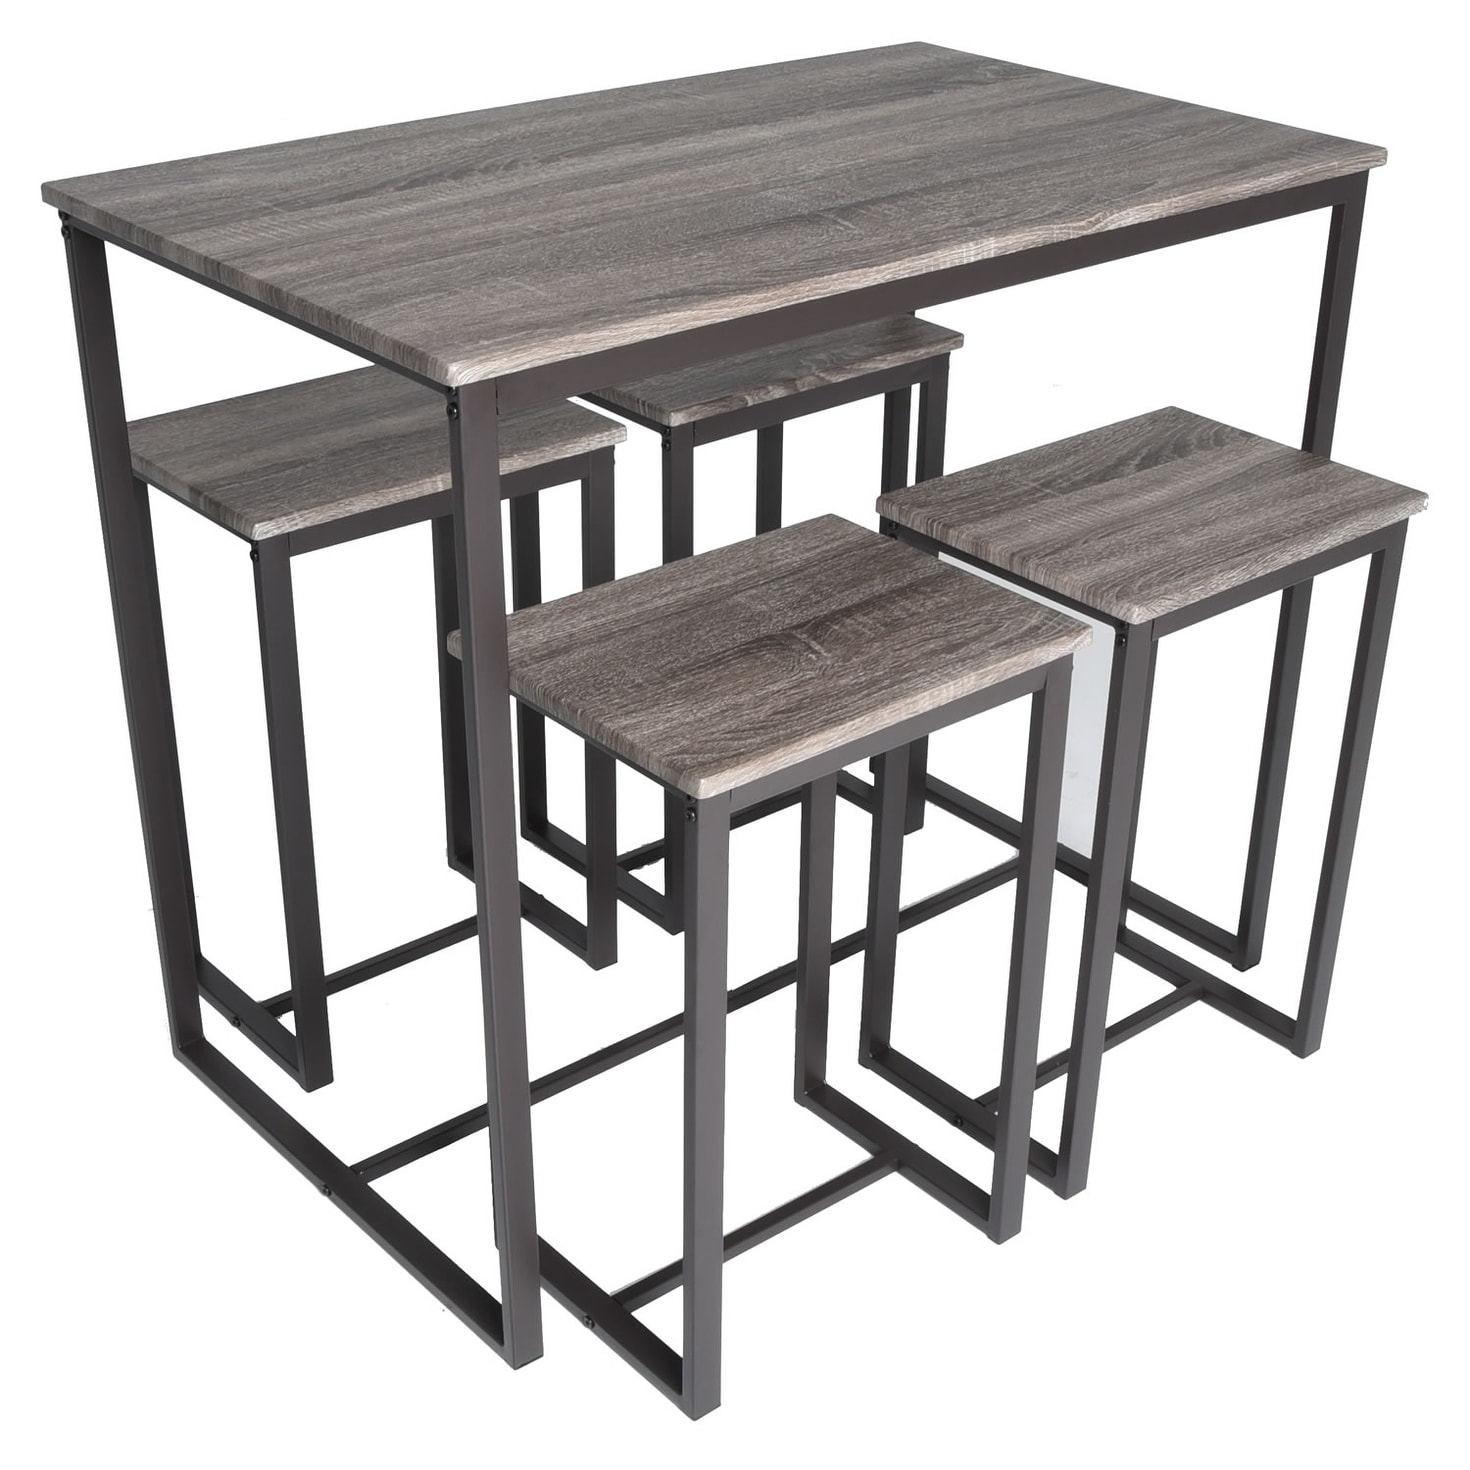 Magnificent Zenvida 5 Piece Bistro Pub Table Set With 4 Stools Onthecornerstone Fun Painted Chair Ideas Images Onthecornerstoneorg